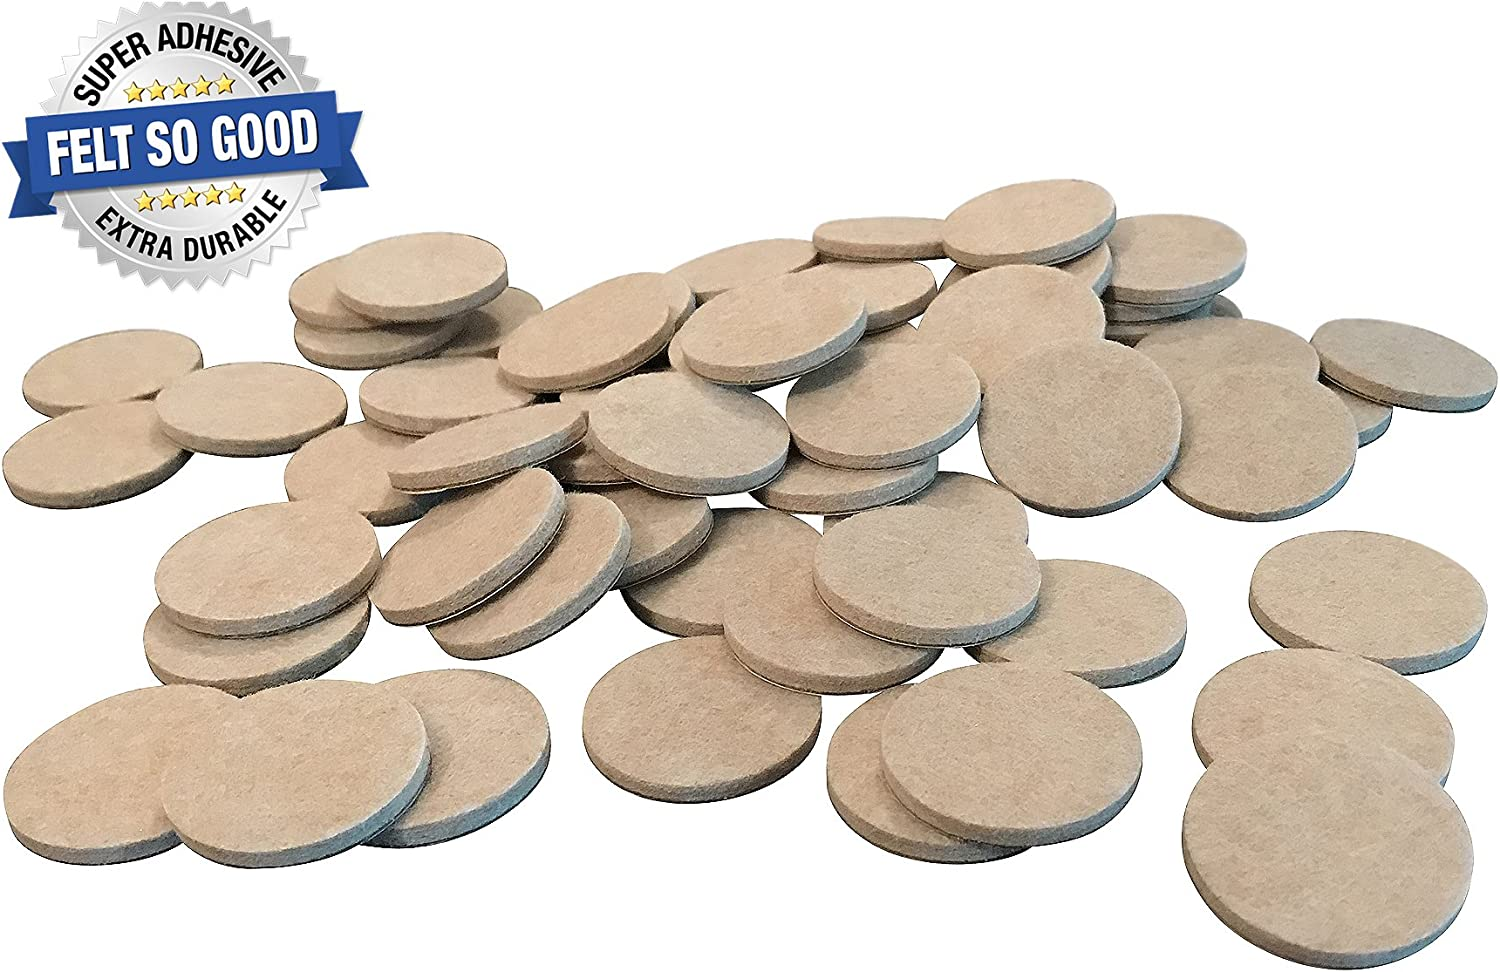 "Felt So Good 8802E Self Adhesive Felt Furniture Pads 1-1/2"", Beige, 60 Pack"